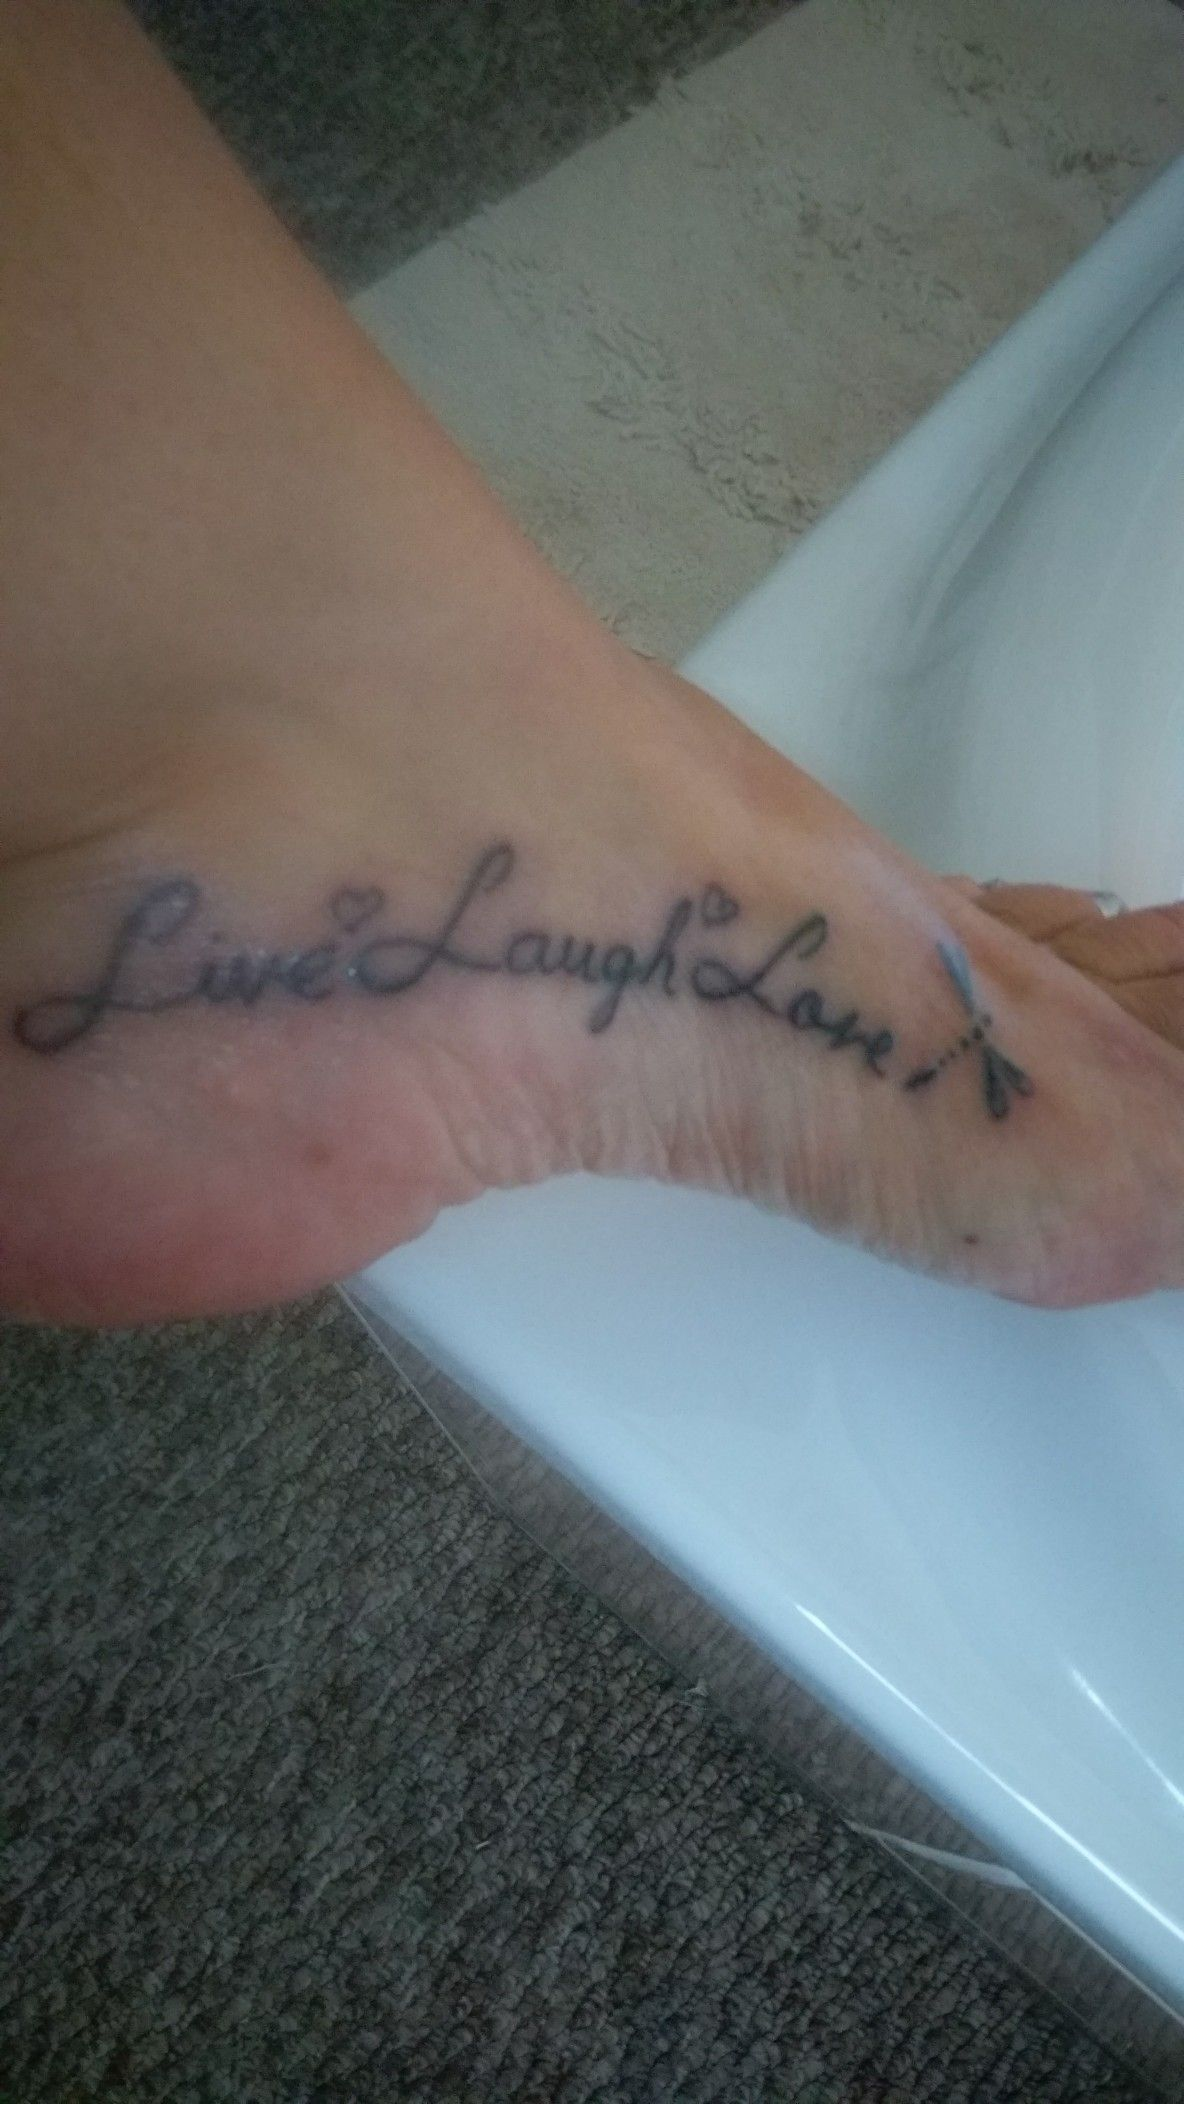 My Live Laugh Love foot tattoo (With images) Foot tattoo